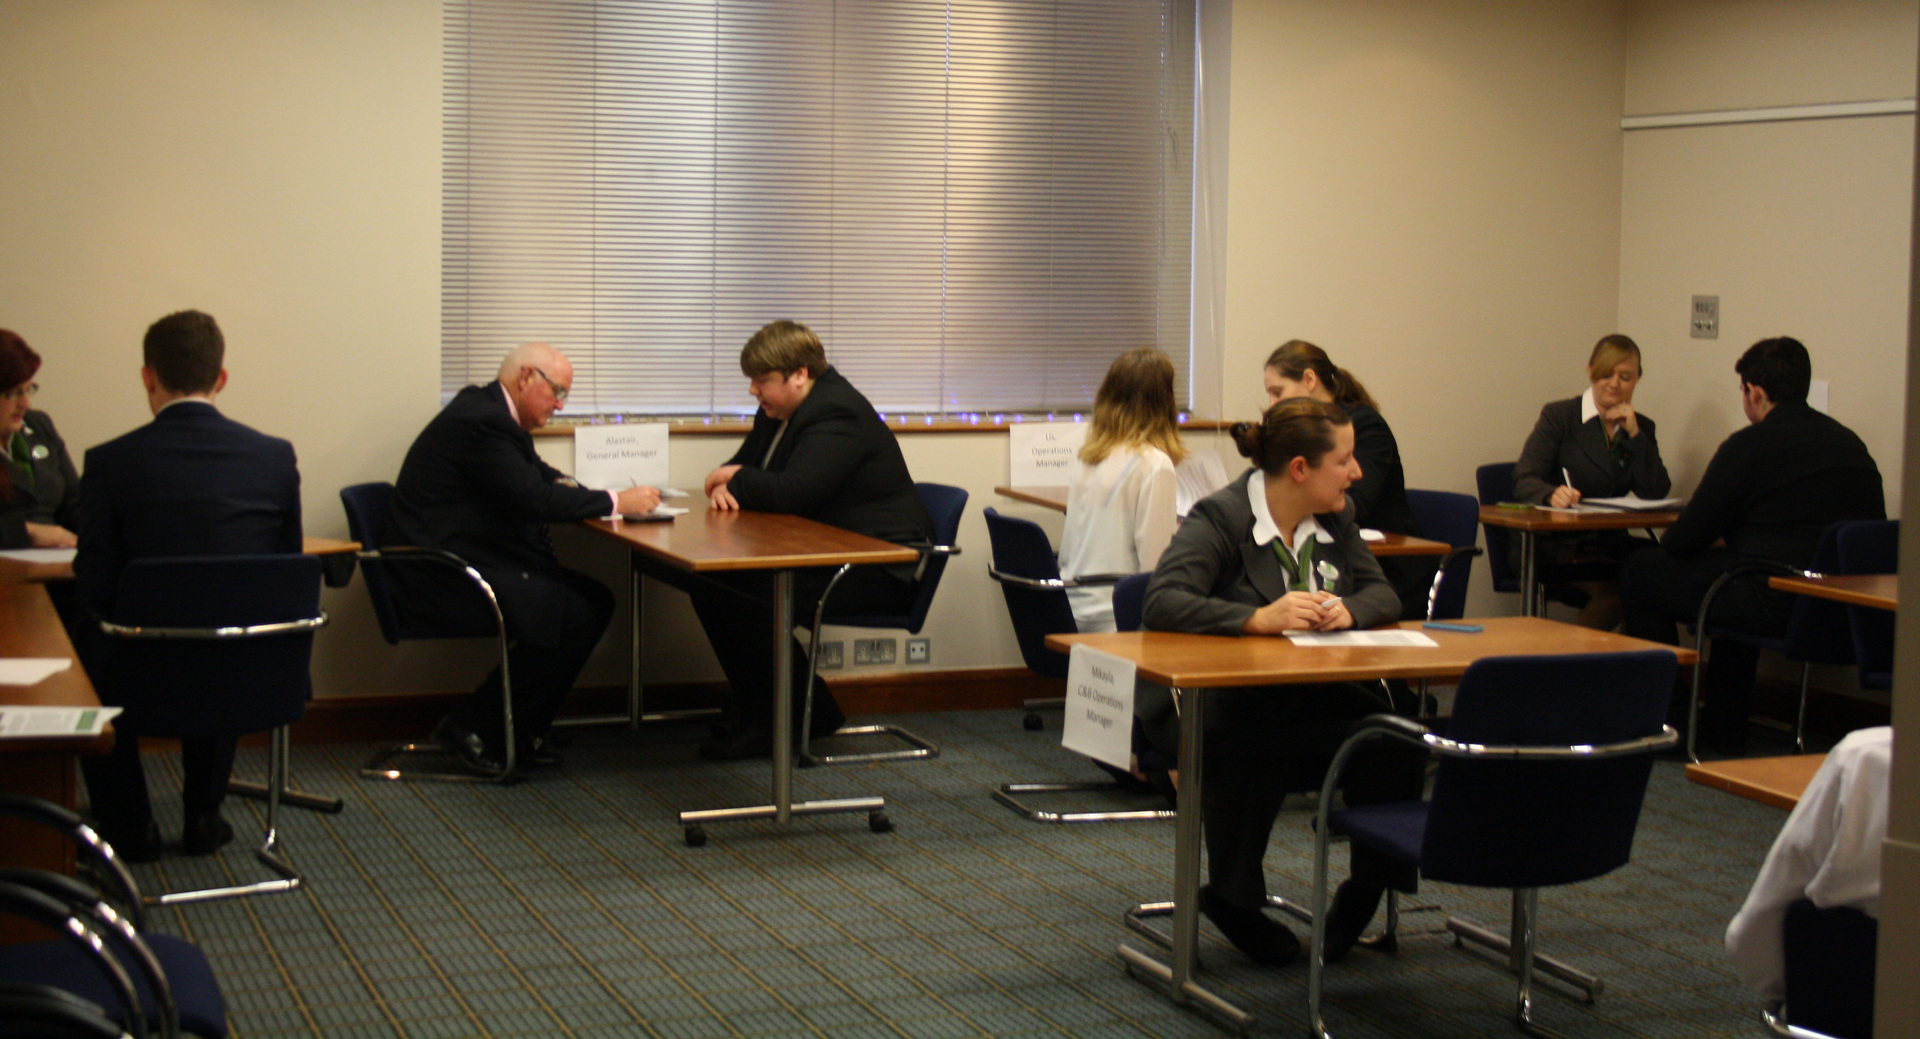 Students taking part in the interview process at the Holiday Inn, Eastleigh